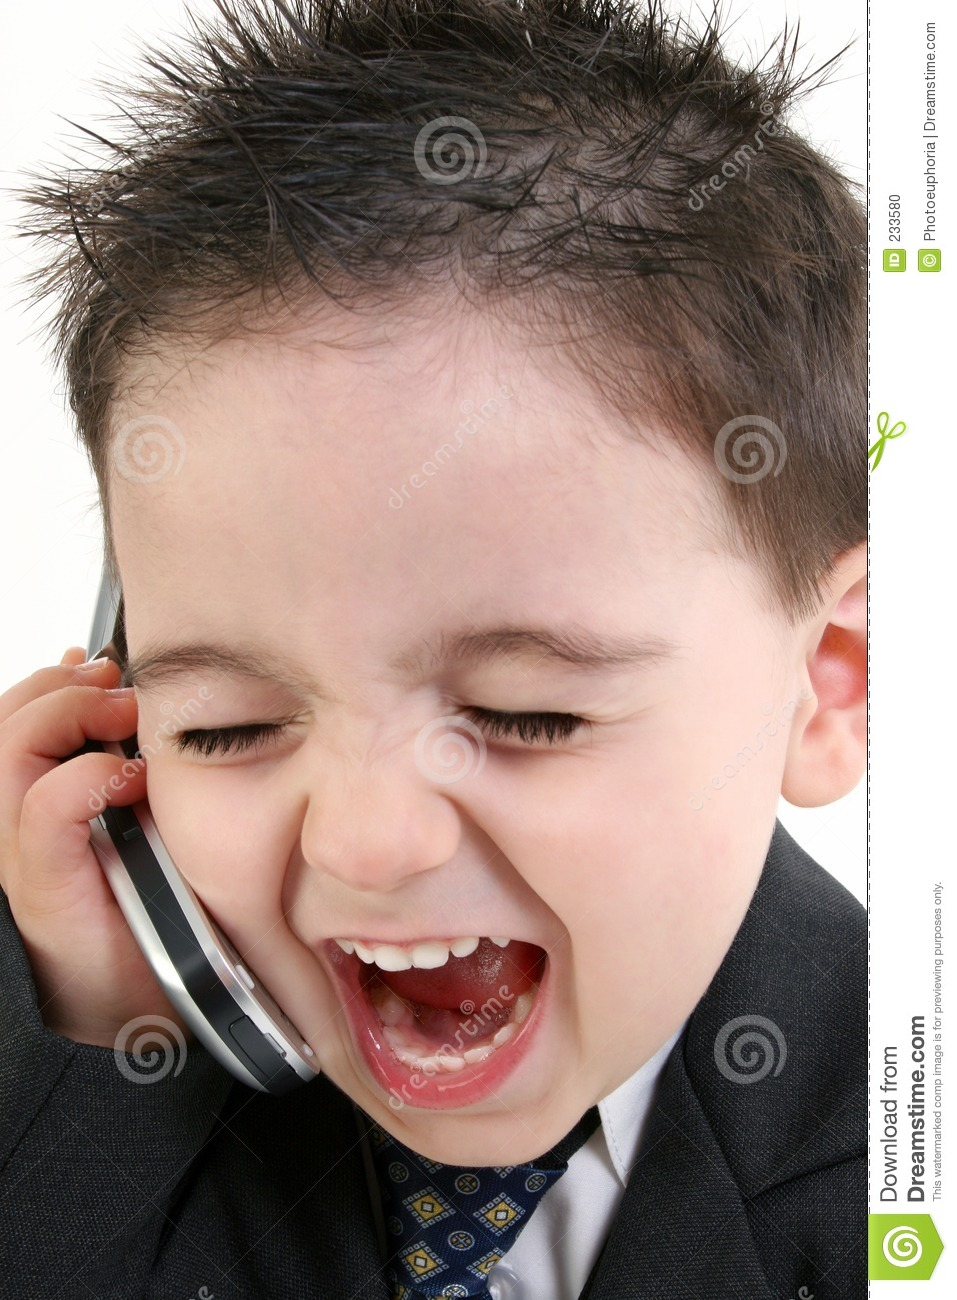 19fa2af56 Adorable Baby Boy In Suit Yelling Into Cellphone Stock Photo - Image ...